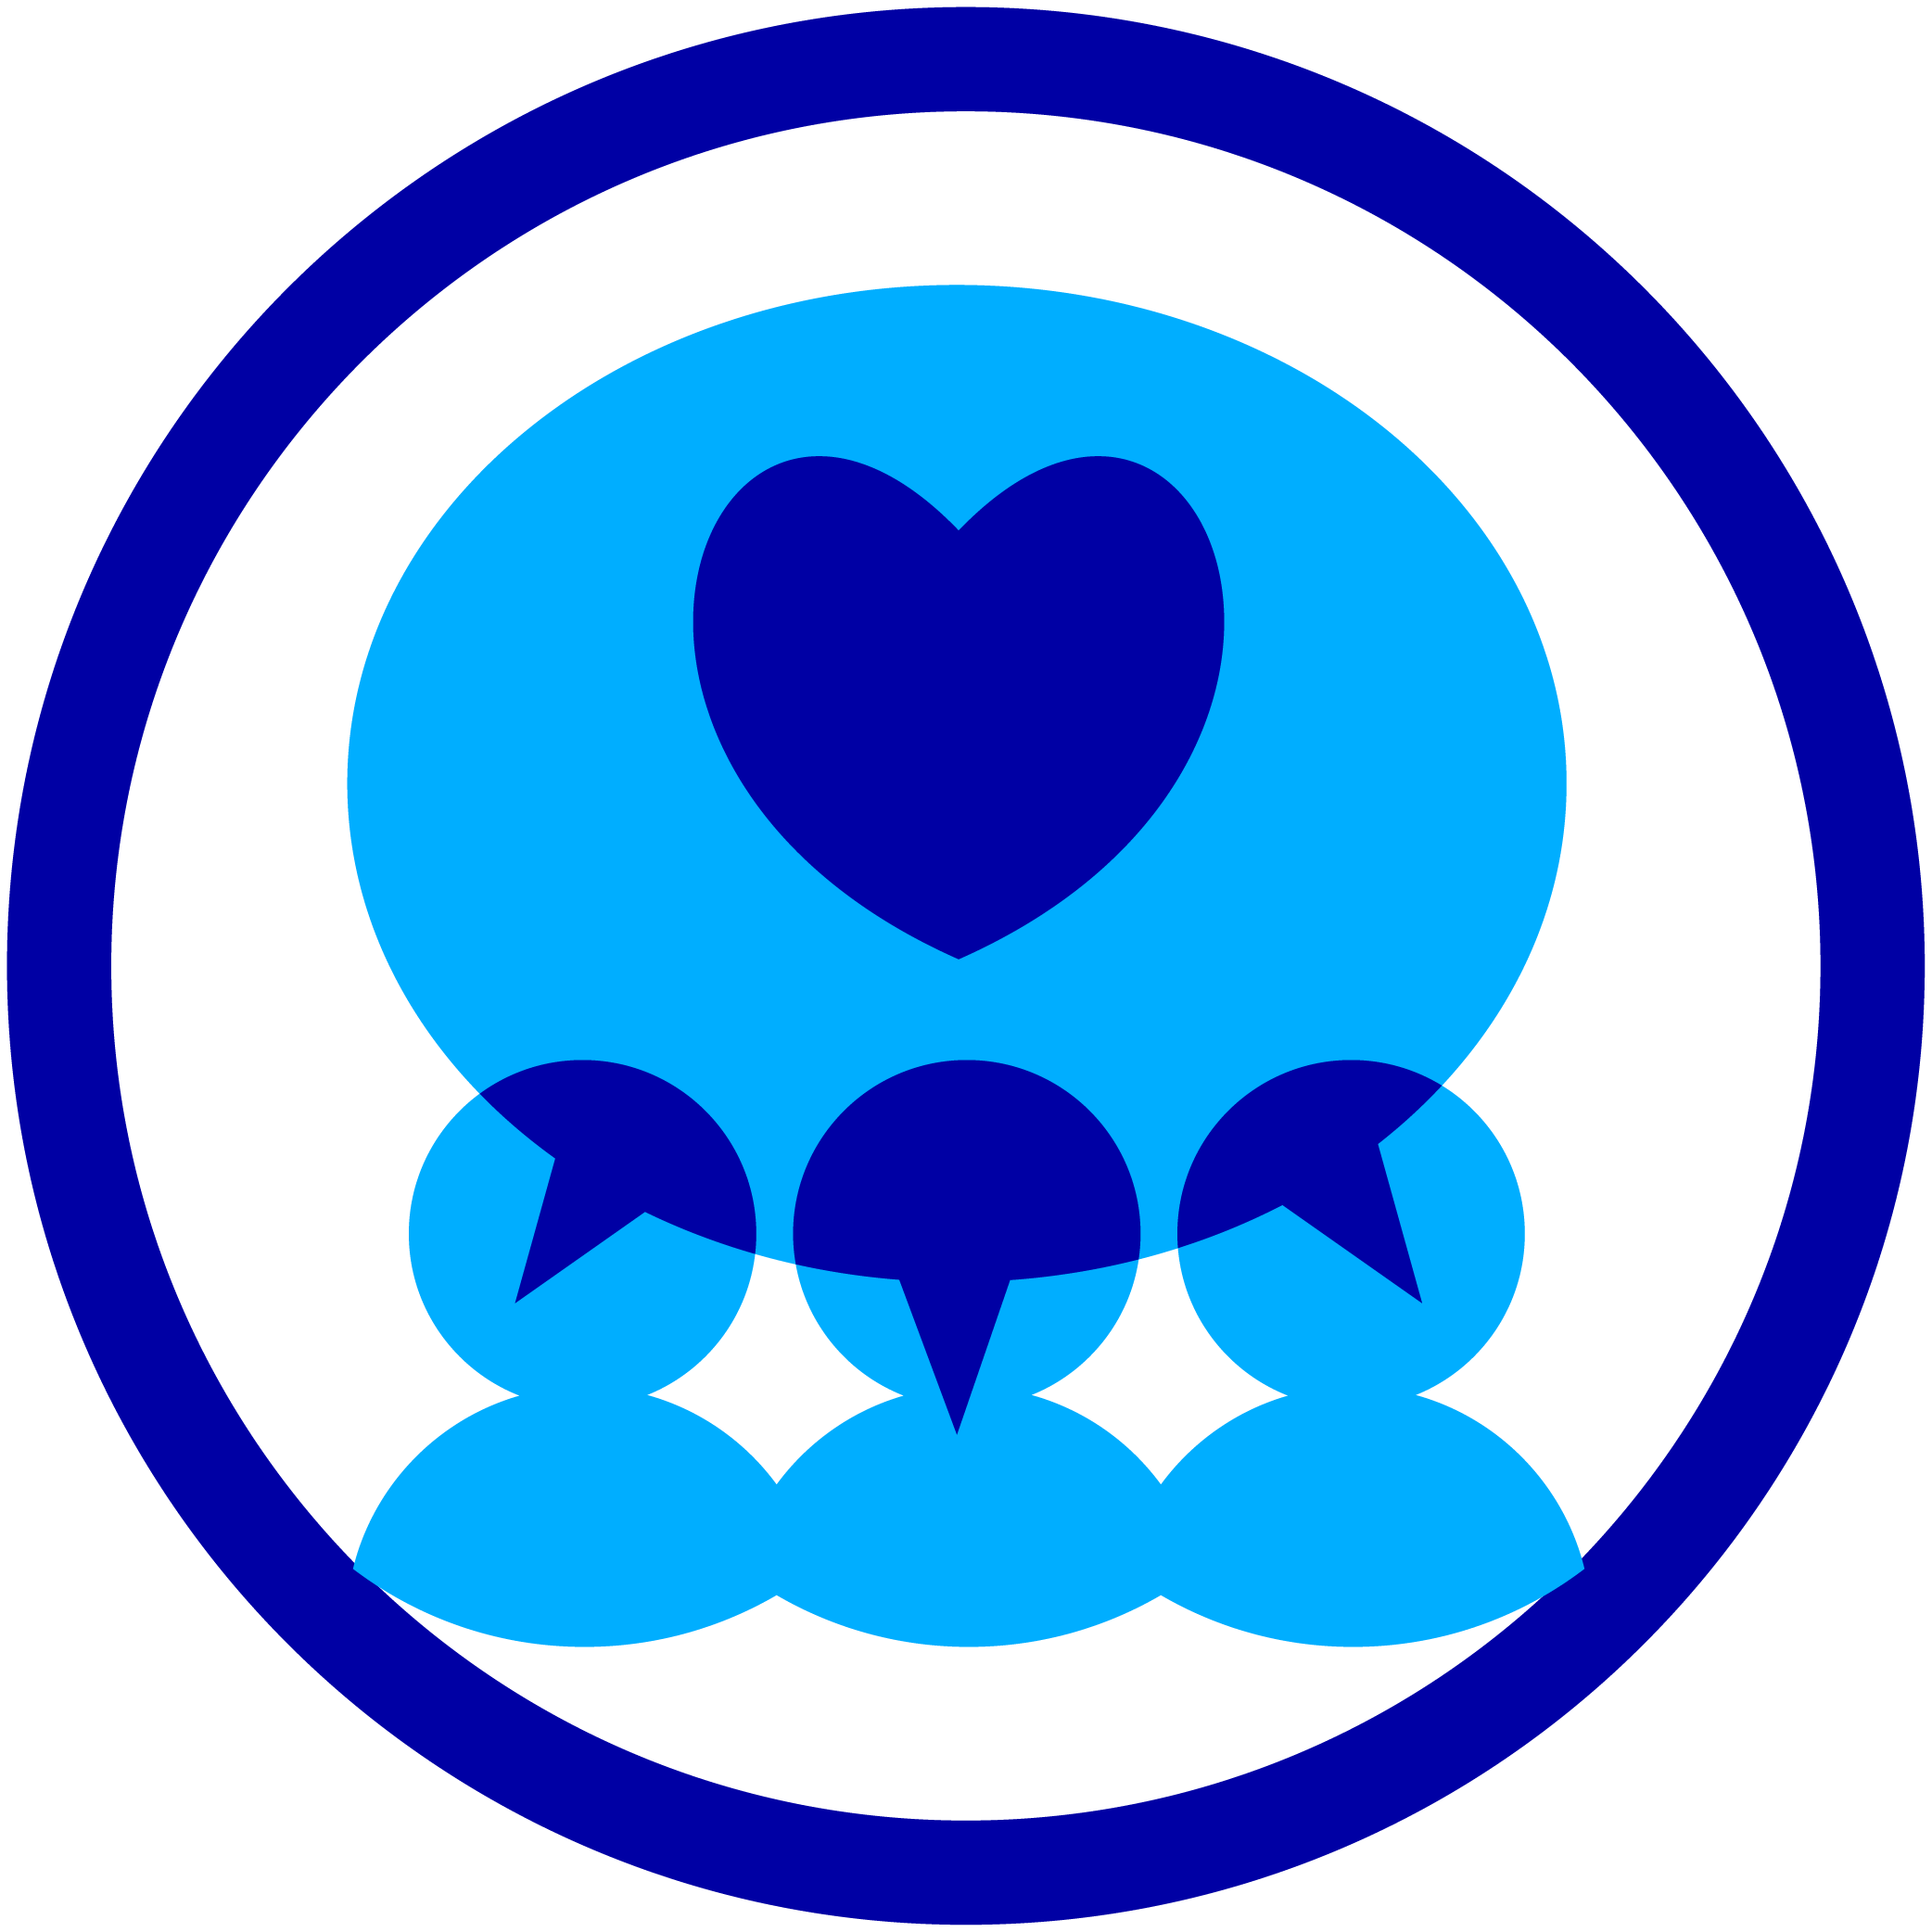 https://cl.fi-group.com/wp-content/uploads/sites/13/2021/02/blue-icons-set_1-54.png